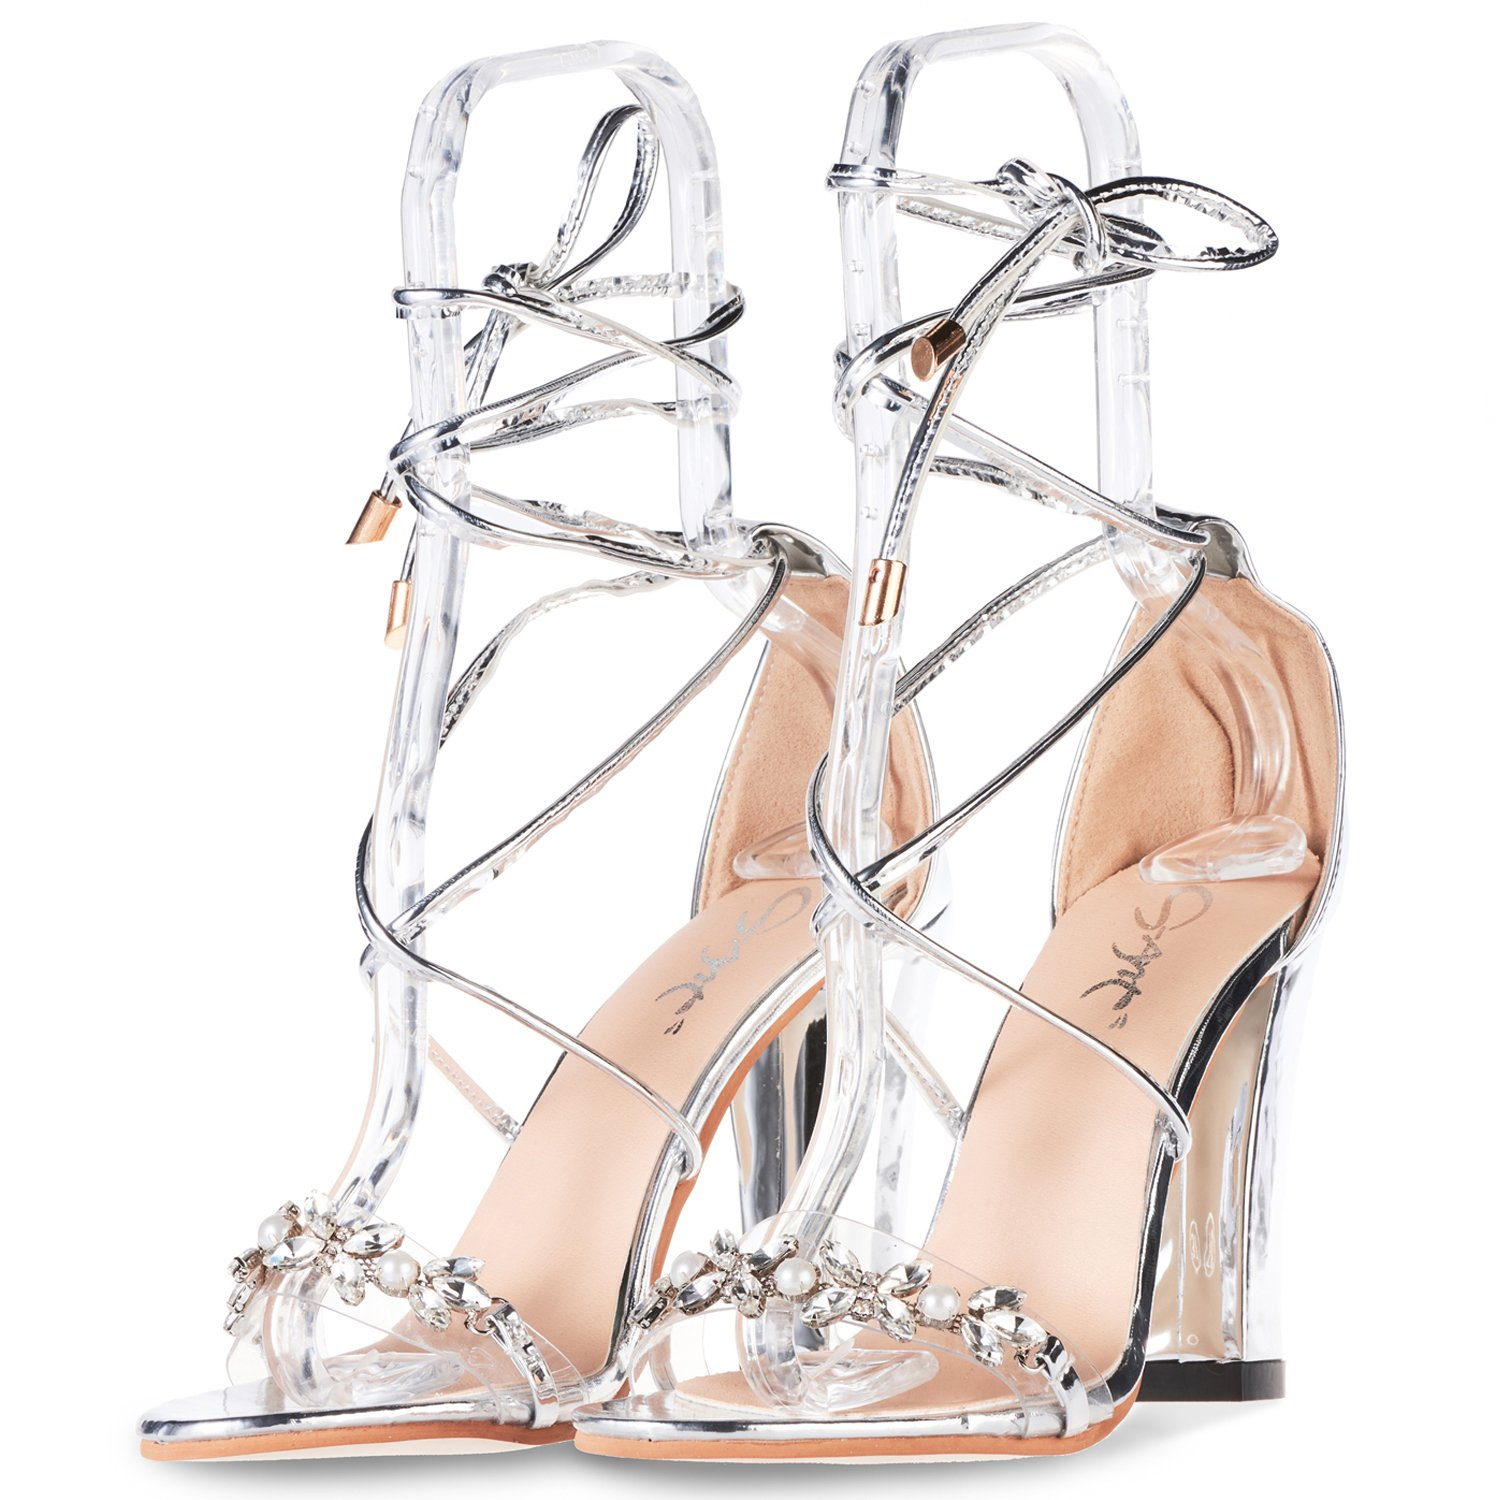 JSUN7 Women's Lace up Chunky High Heels Pumps One Band Pearl Flower Open Toe Sandal Wedding Party Dress Pump Silver 8